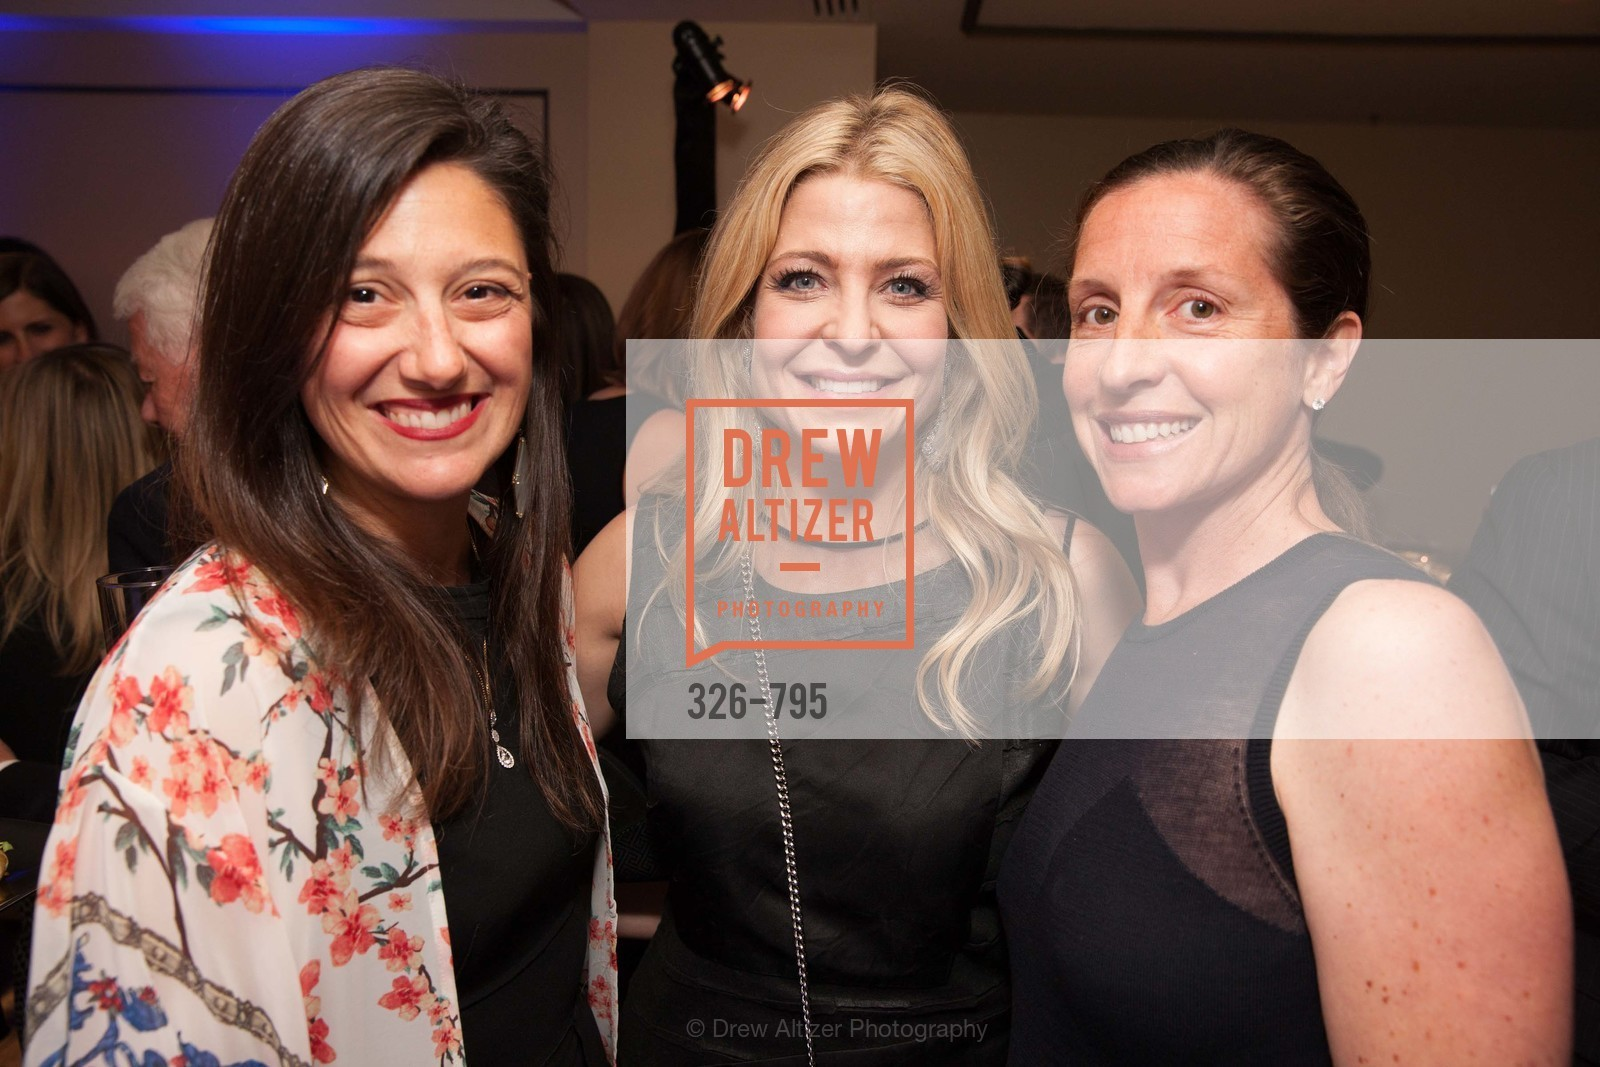 Shannon Davis, Jenna Hunt, Allison Chauvet, COMPASS FAMILY SERVICES Annual Spring Benefit:  Every Family Needs A Home, US, April 23rd, 2015,Drew Altizer, Drew Altizer Photography, full-service agency, private events, San Francisco photographer, photographer california